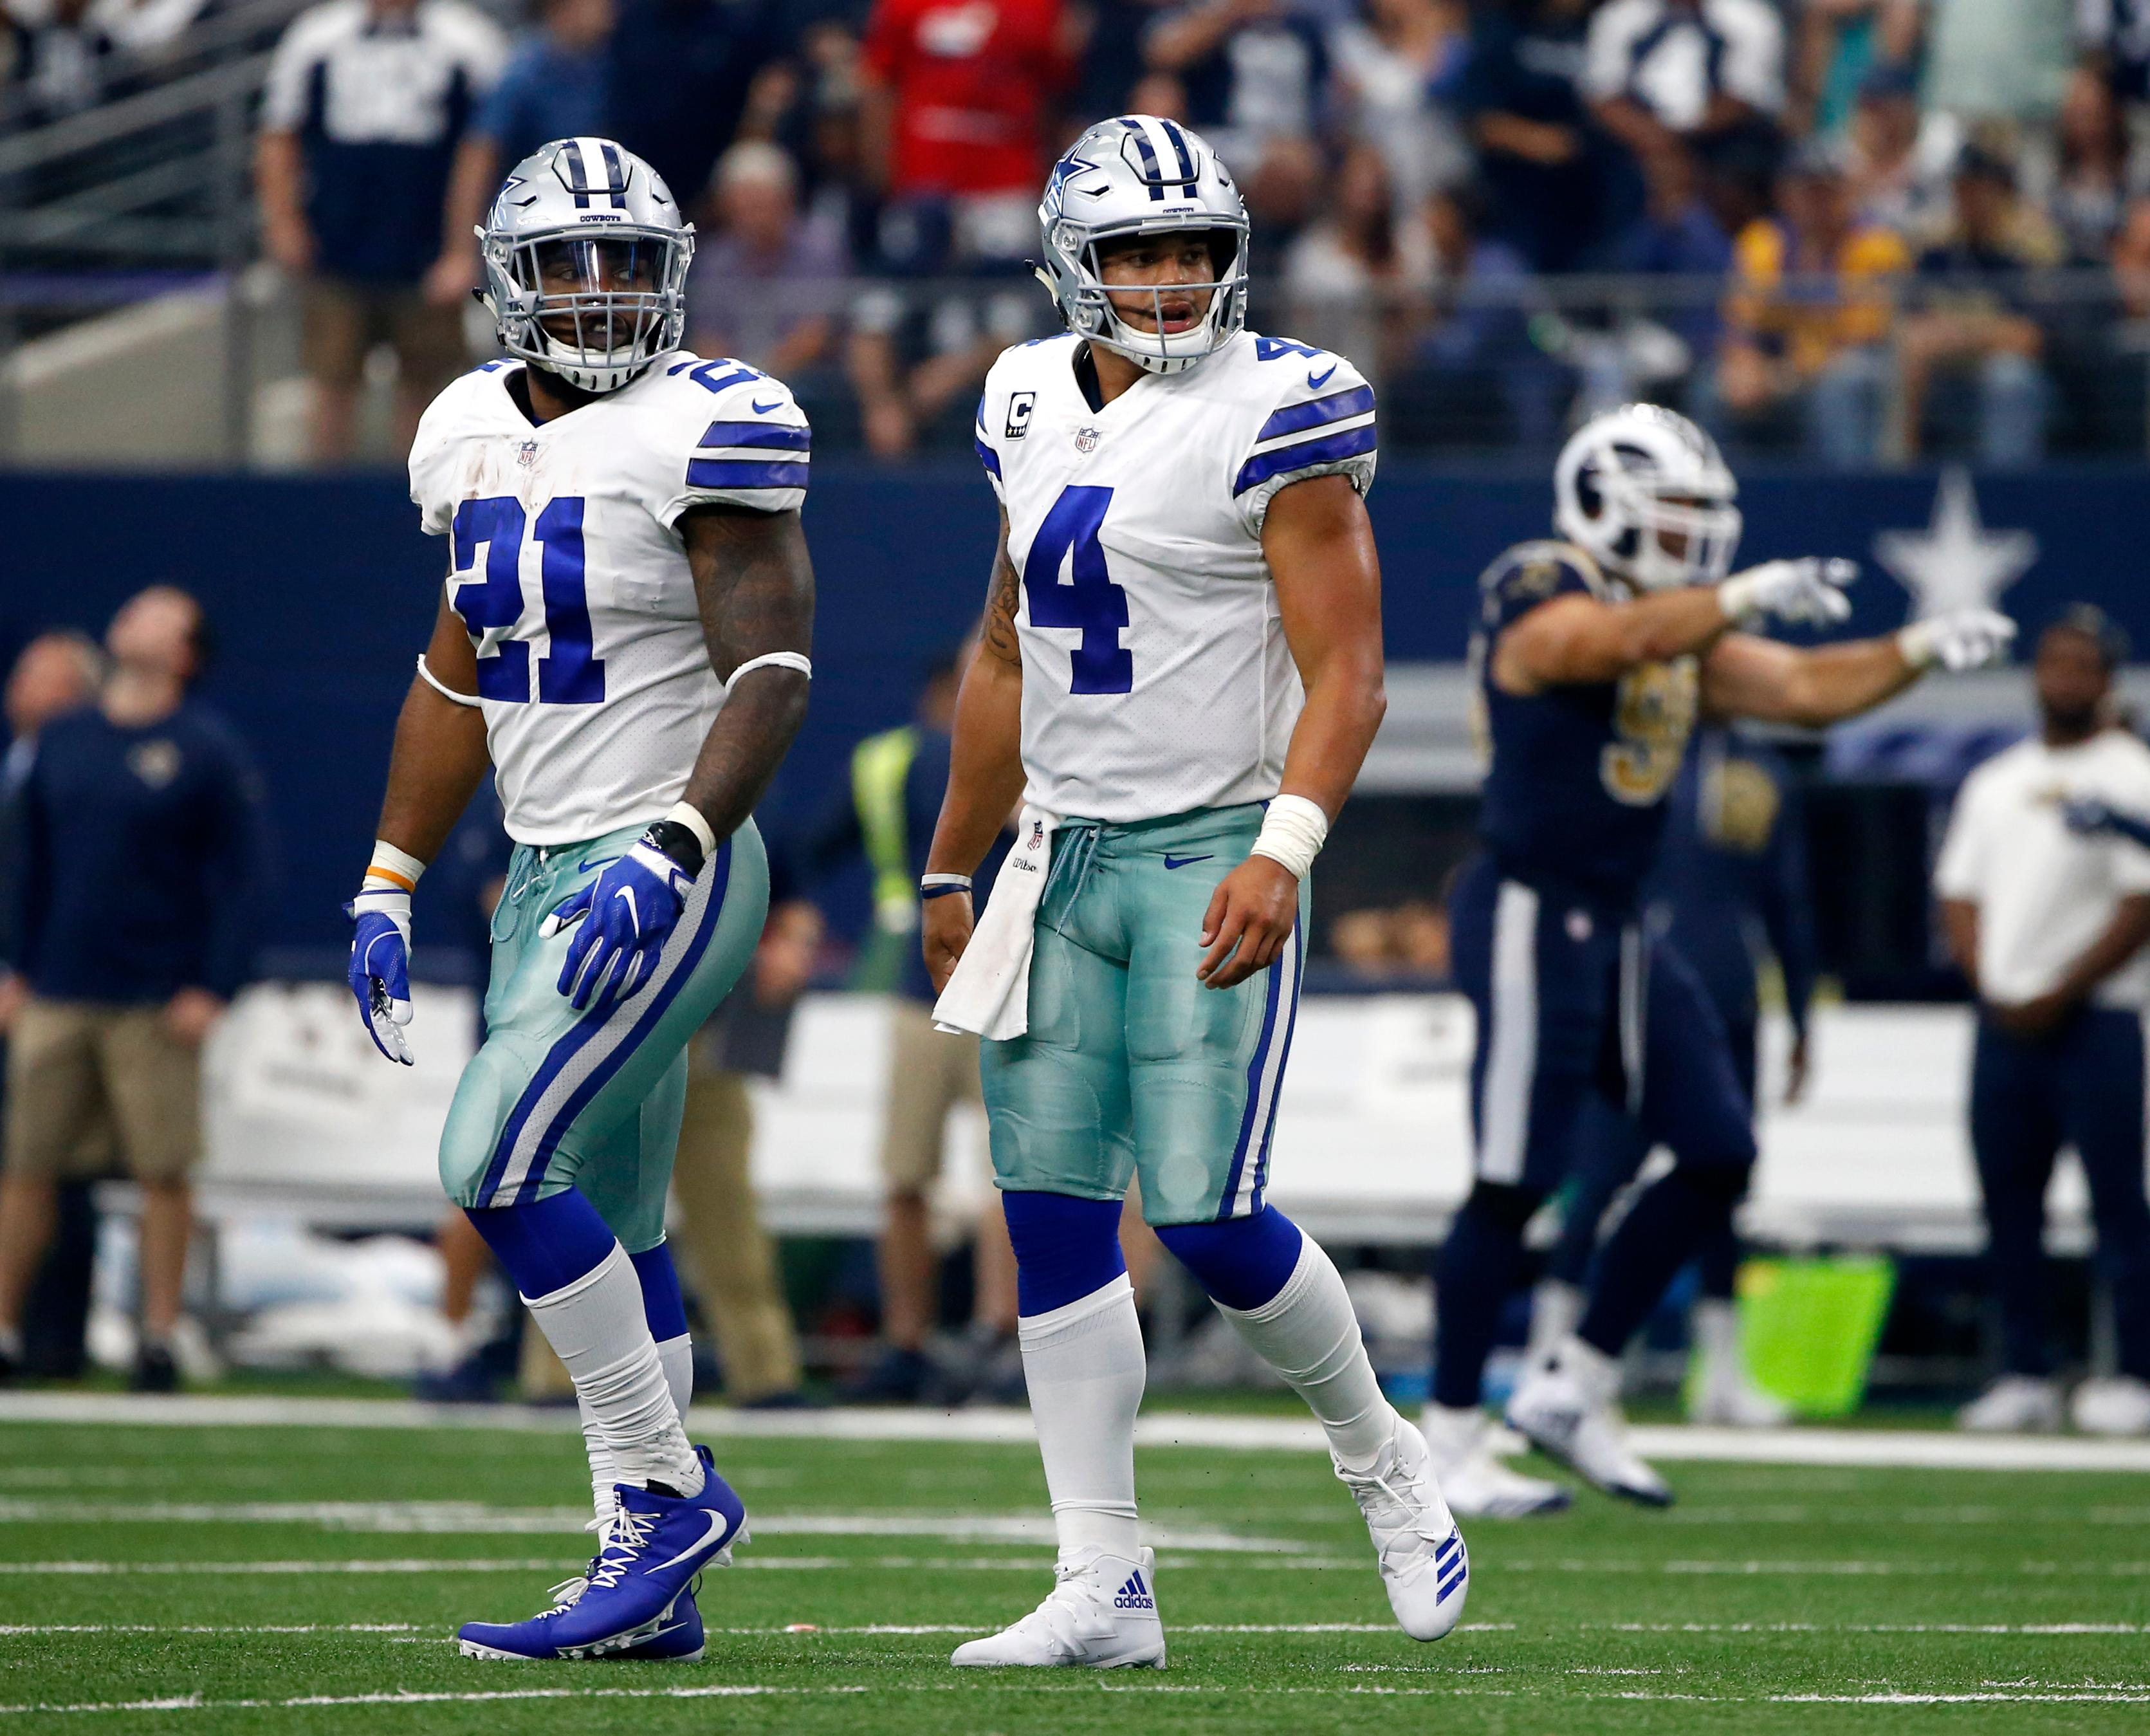 Dallas Cowboys running back Ezekiel Elliott (21) and quarterback Dak Prescott (4) walk off the field after an unsuccessful two-point conversion attempt on a pass to wide receiver Terrance Williams in the second half of an NFL football game against the Los Angeles Rams on Sunday, Oct. 1, 2017, in Arlington, Texas. (AP Photo/Ron Jenkins)